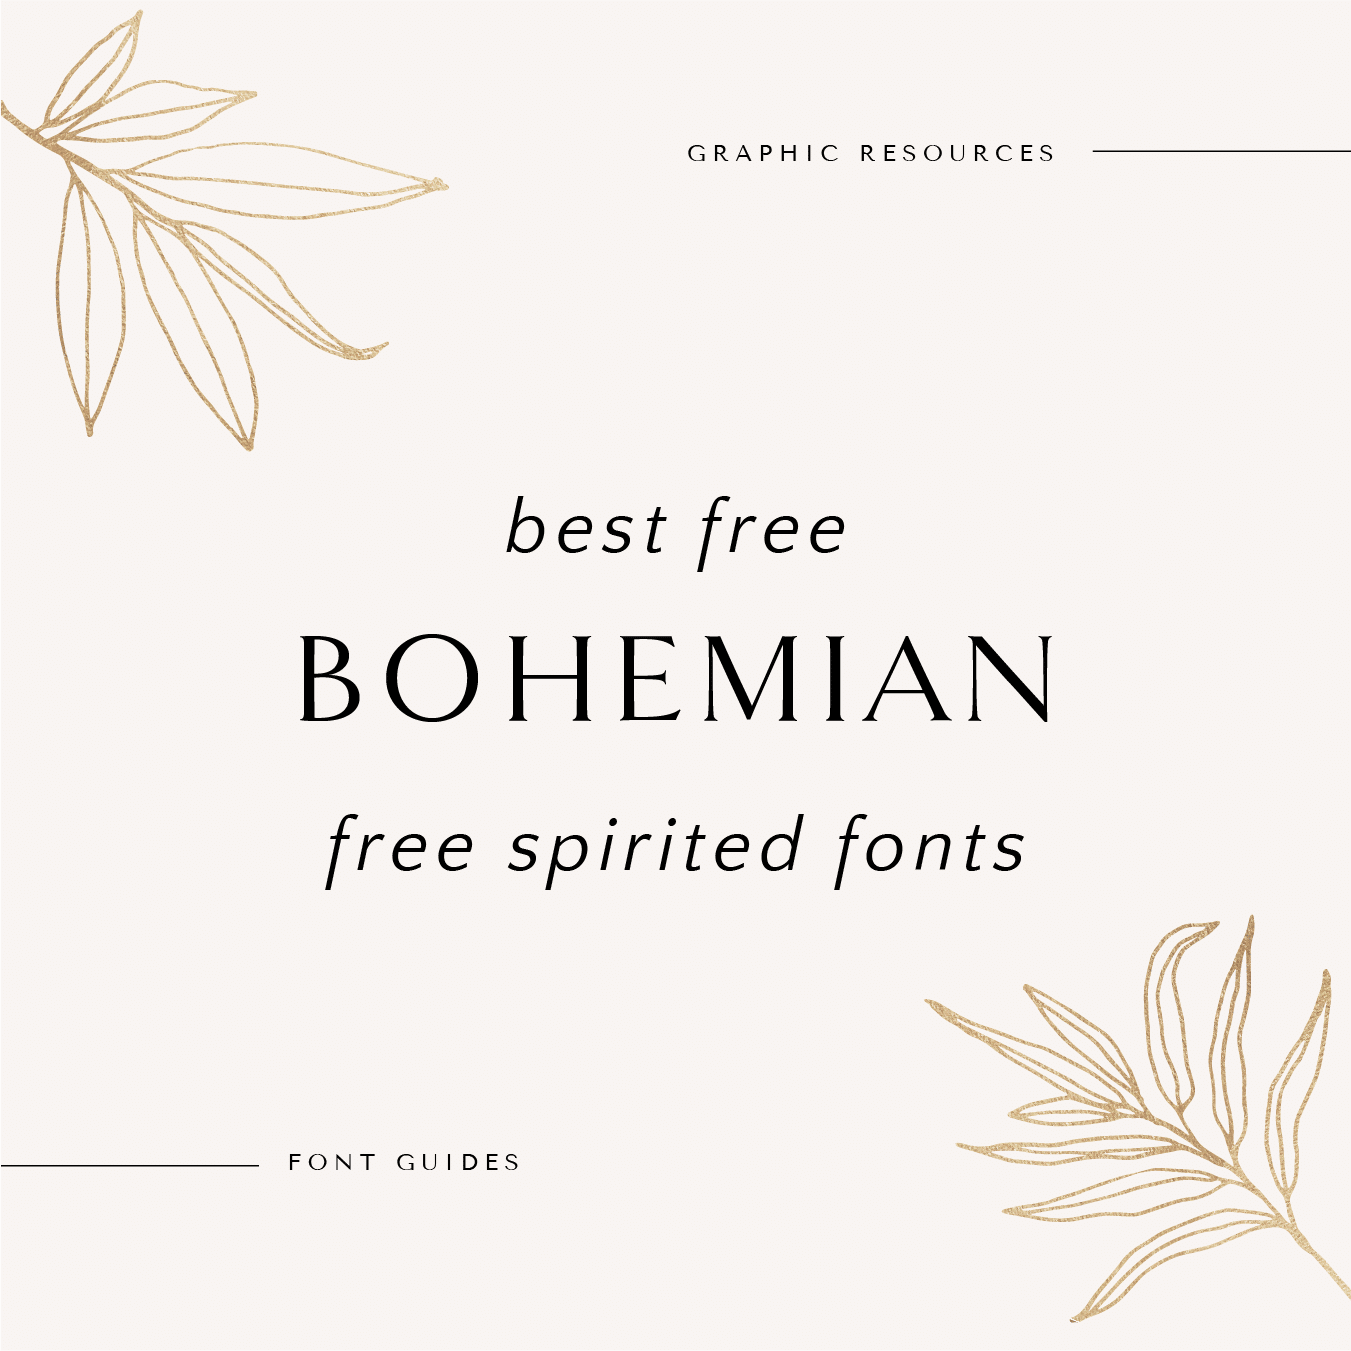 Best Free Bohemian Free Spirited Fonts